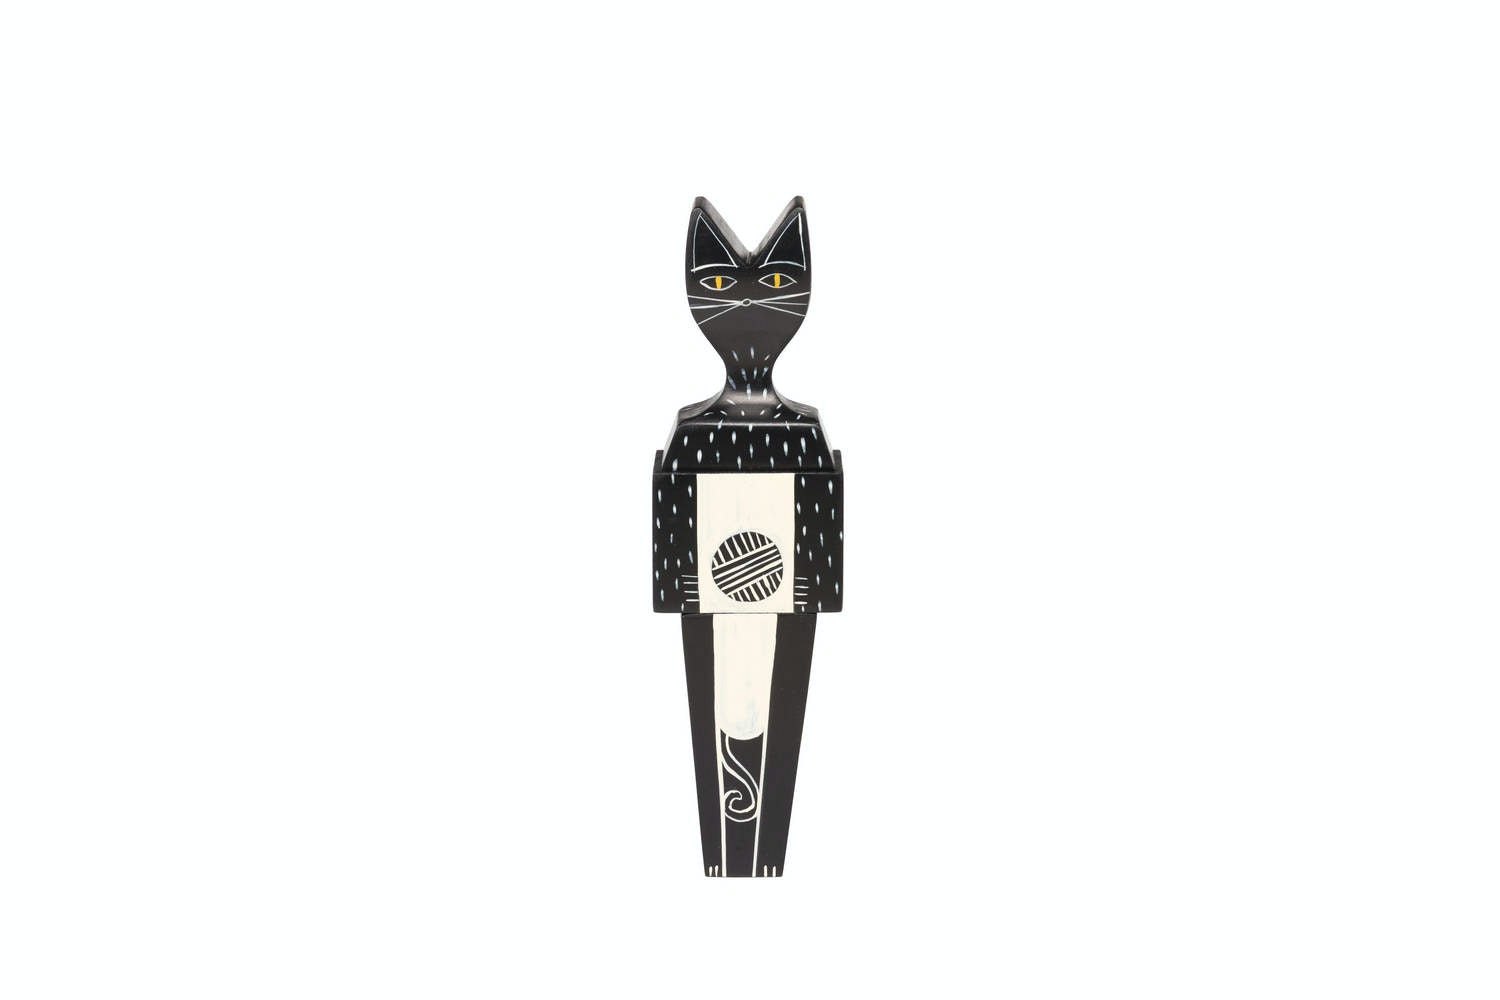 Wooden Doll Cat by Alexander Girard for Vitra